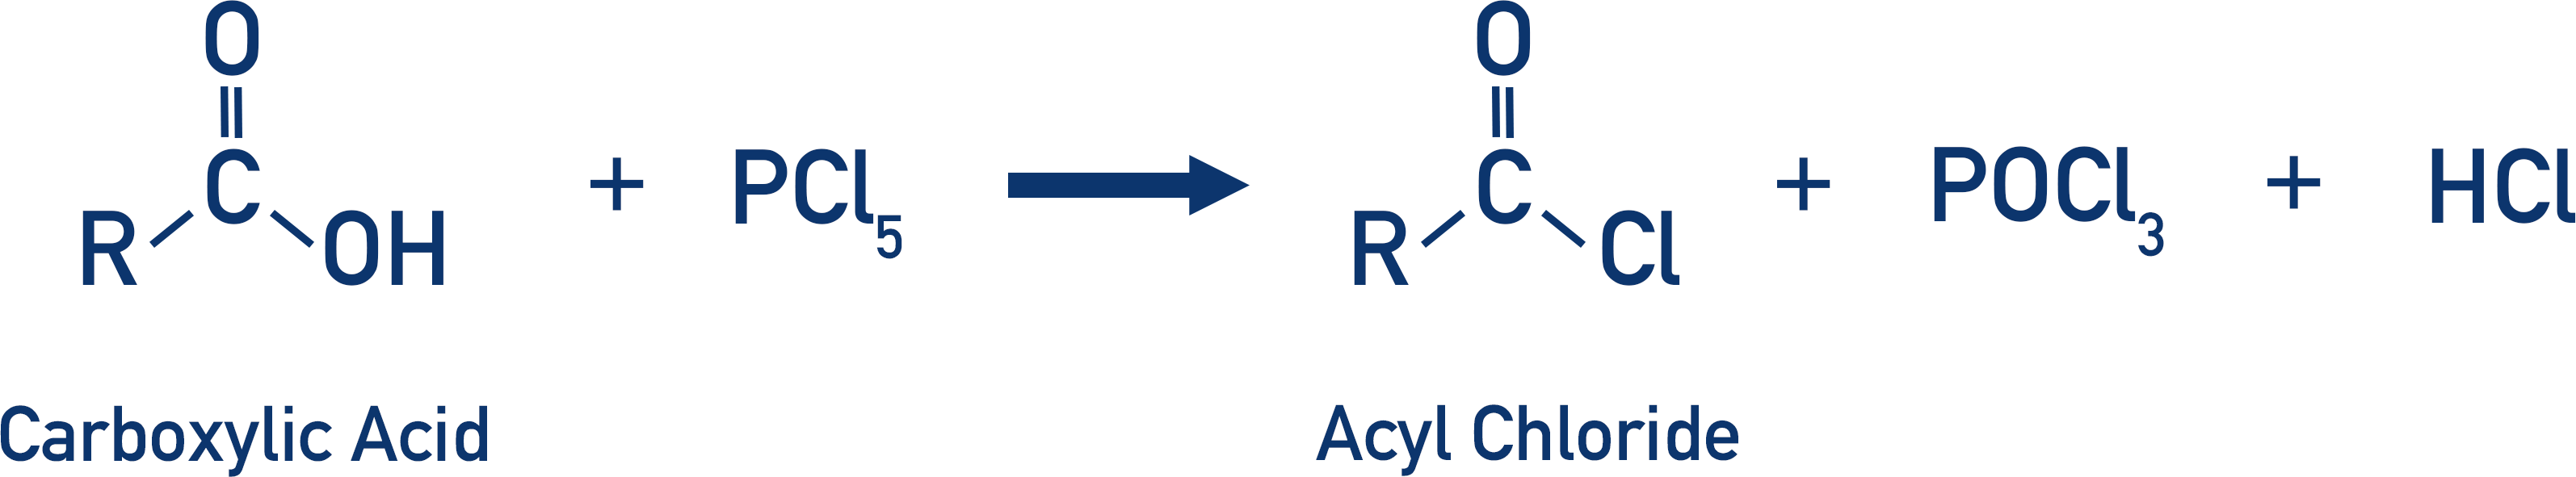 carboxylic acid with phosphorus pentachloride to form acyl chloride